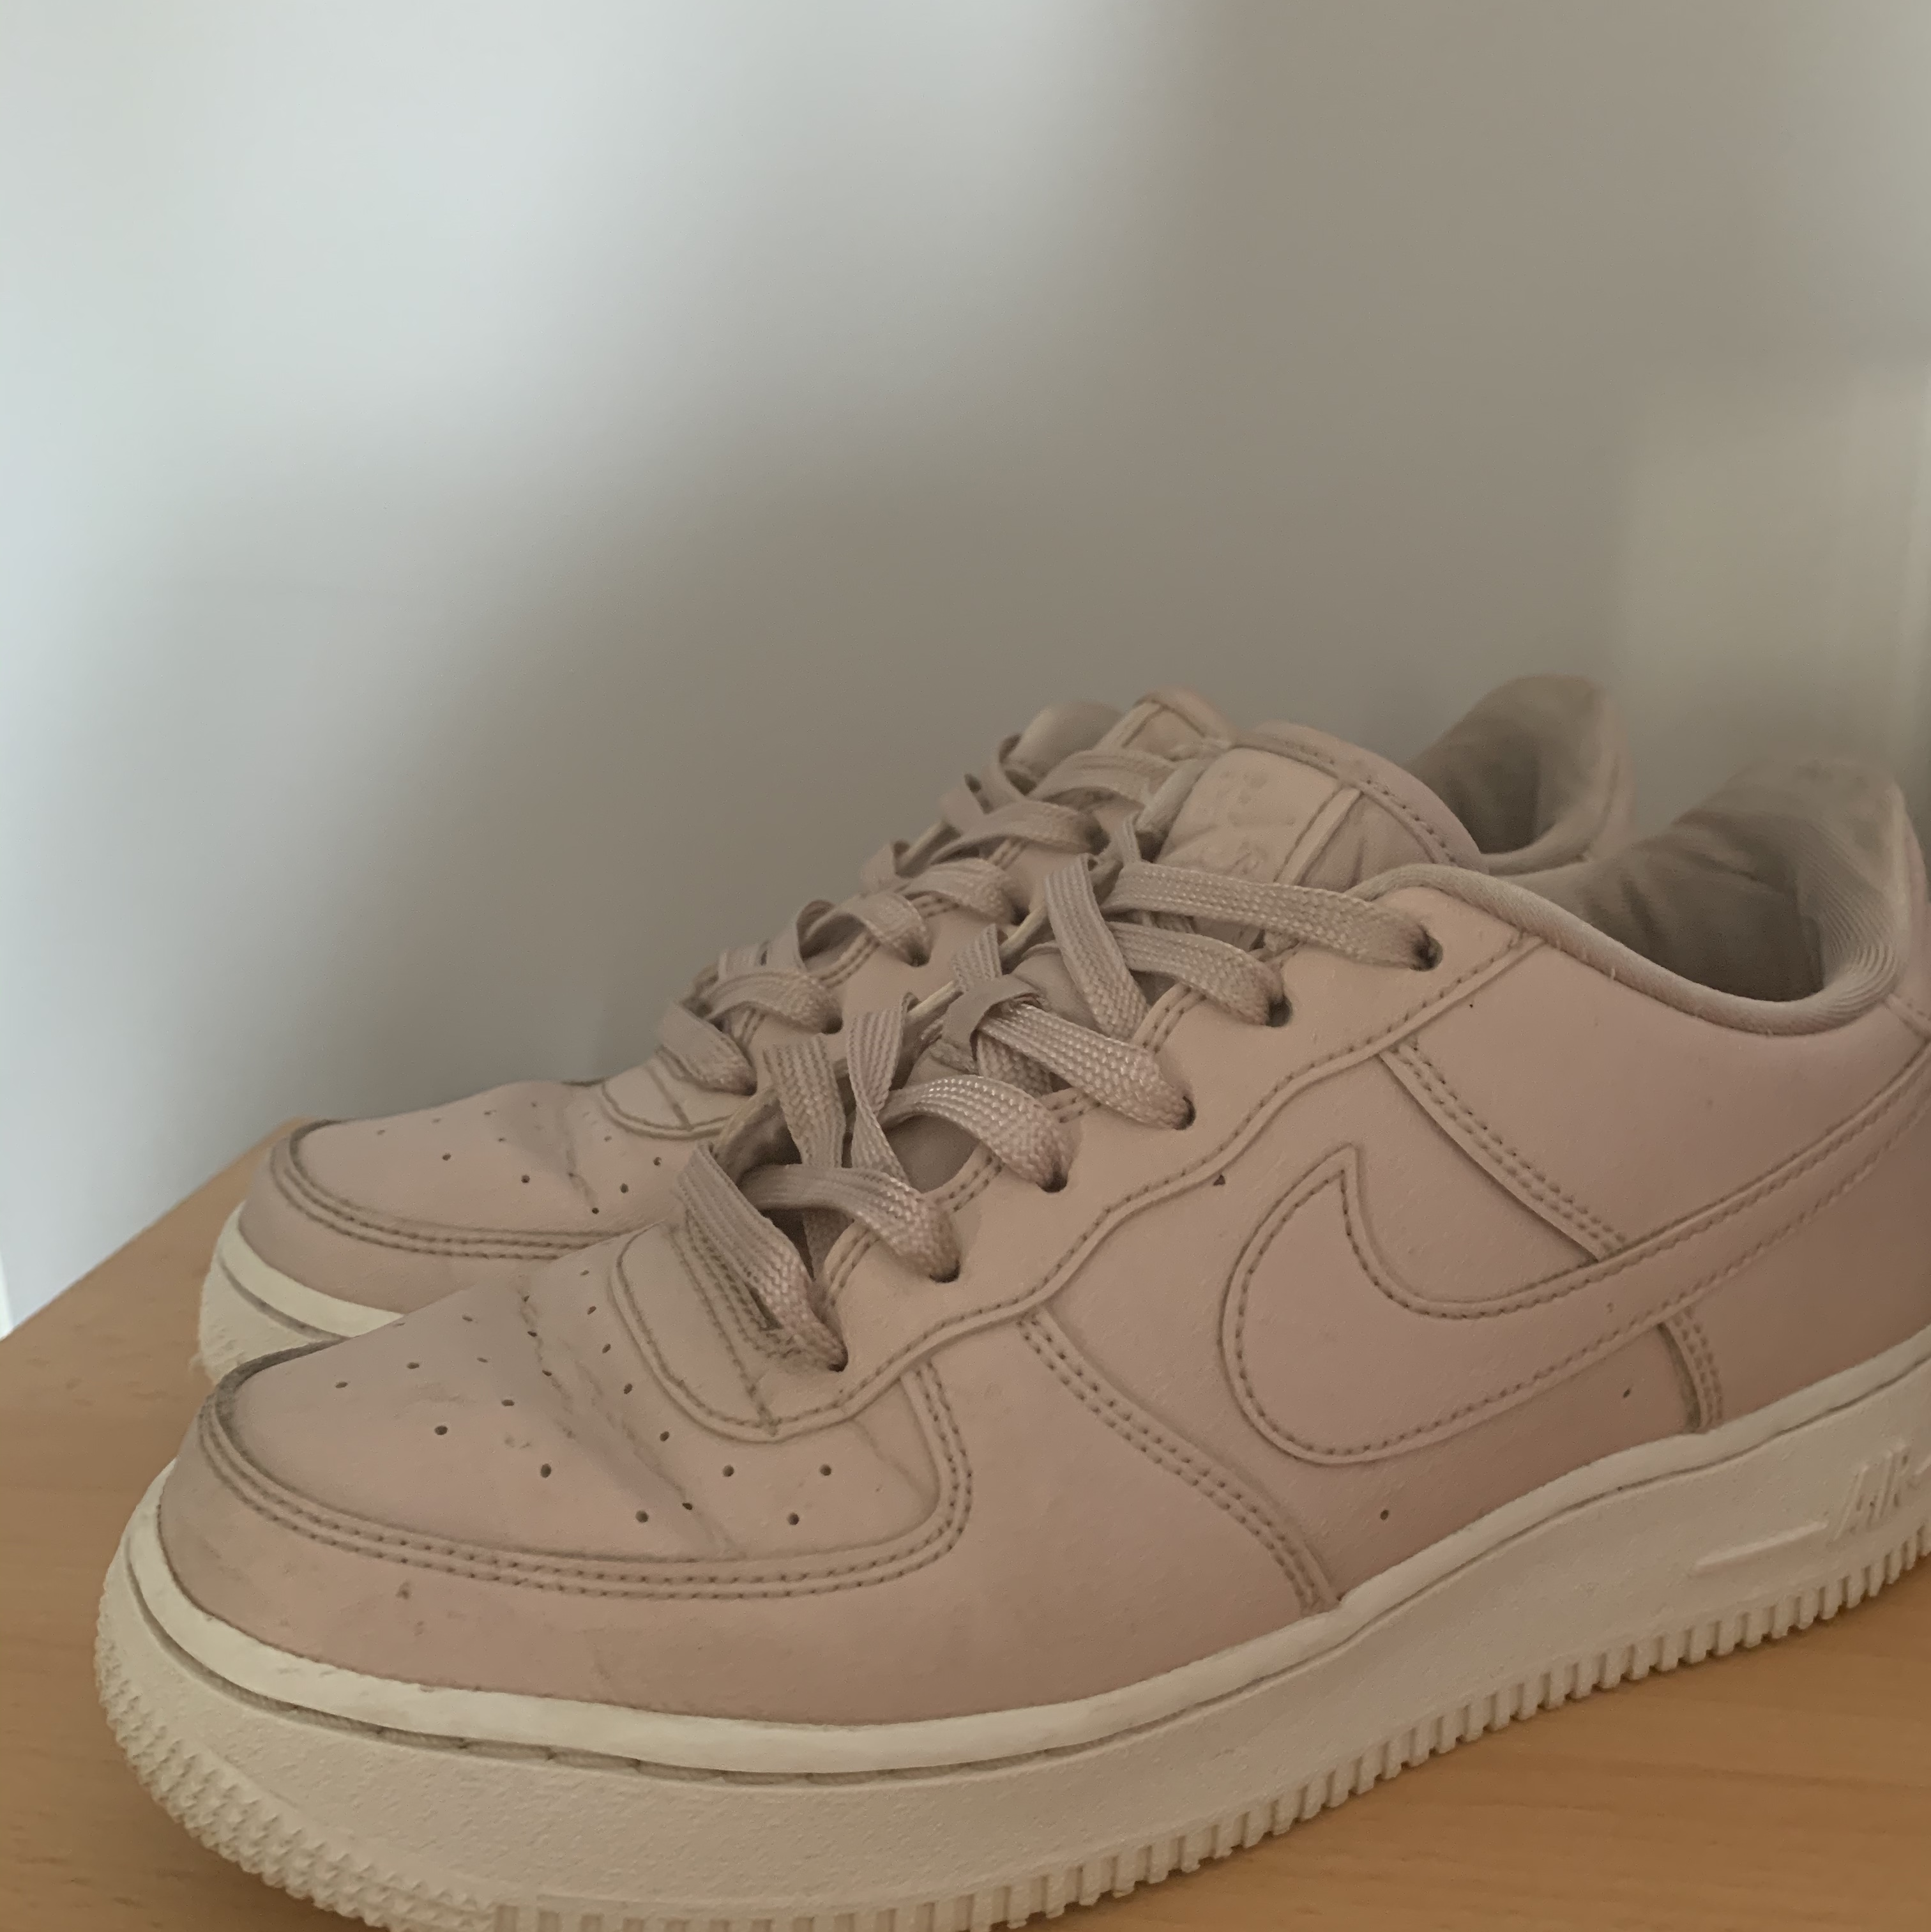 Nike Air Force 1s. Womens size 5.5/38.5